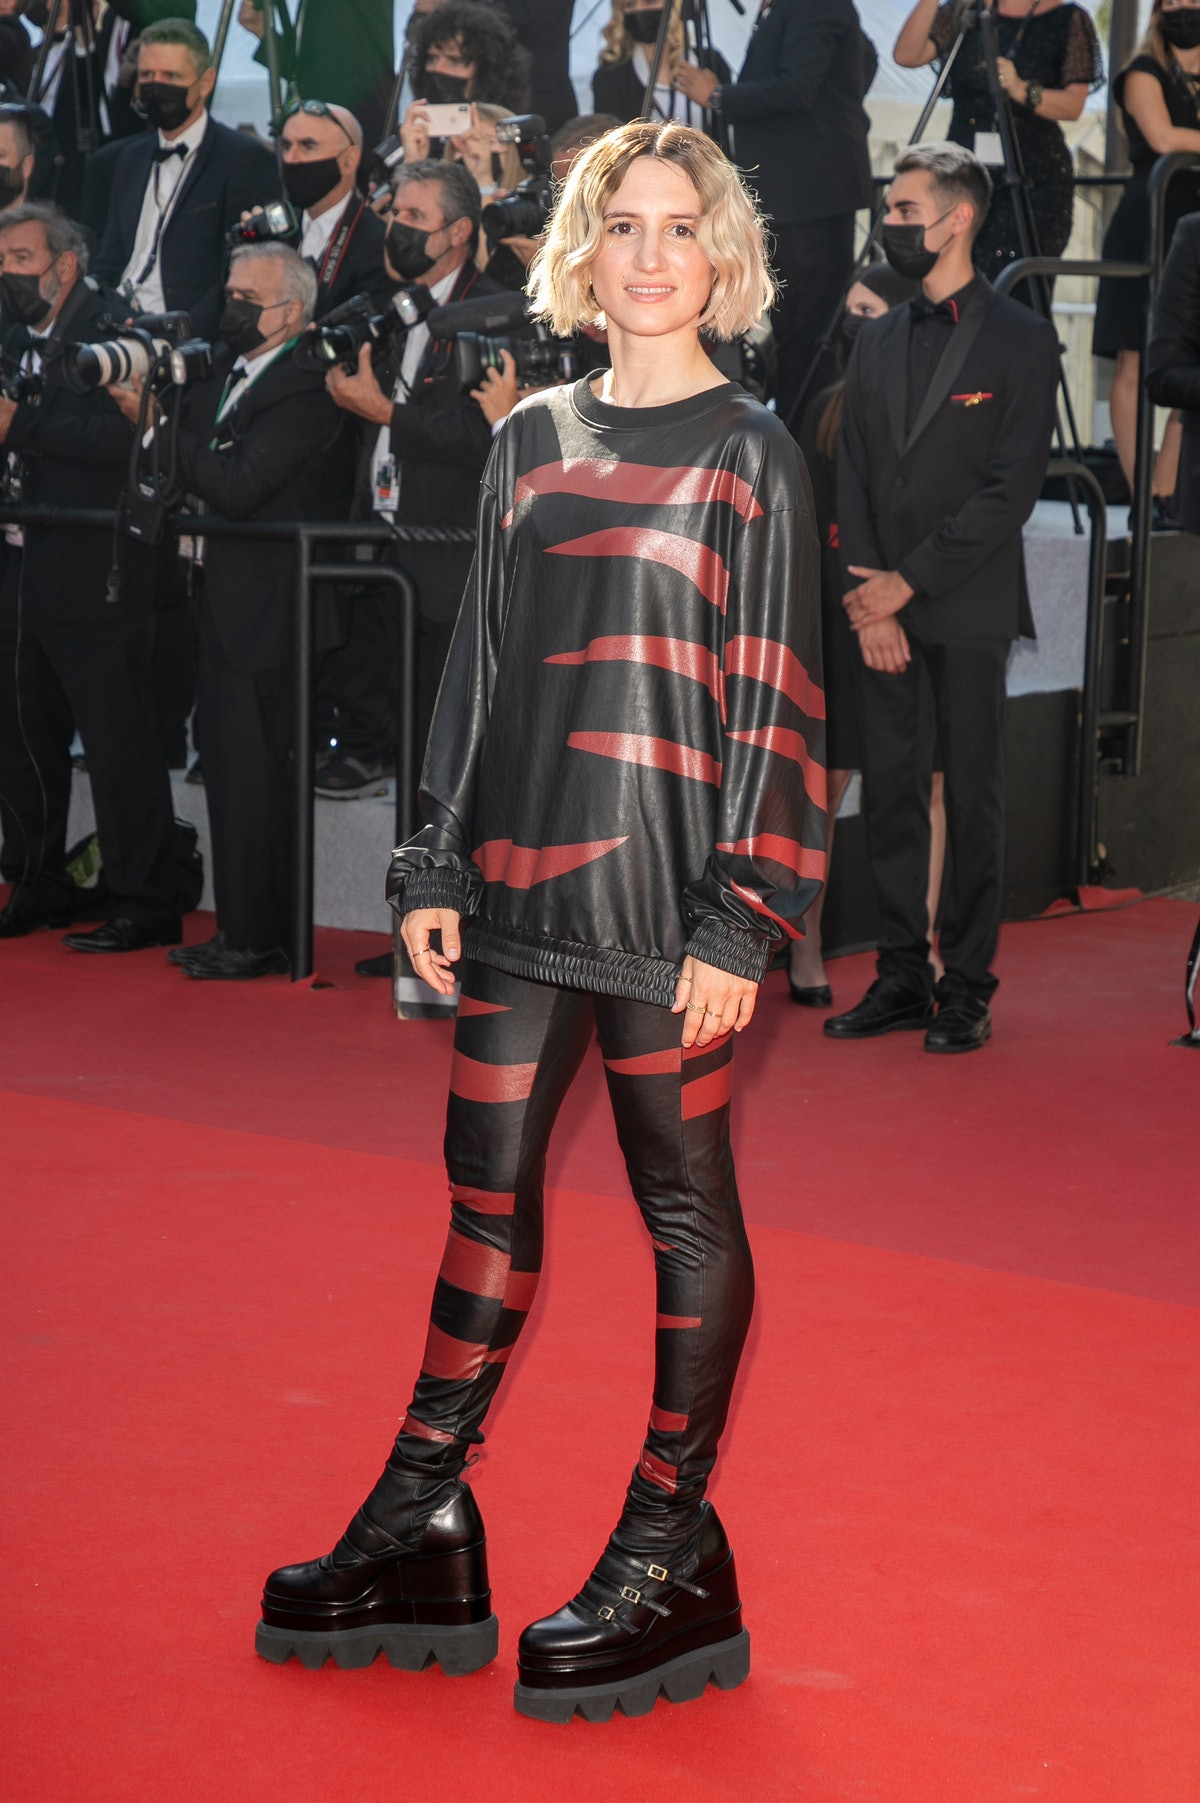 """CANNES, FRANCE - JULY 09: Aloise Sauvage attends the """"Benedetta"""" screening during the 74th annual Cannes Film Festival on July 09, 2021 in Cannes, France. (Photo by Marc Piasecki/FilmMagic)"""